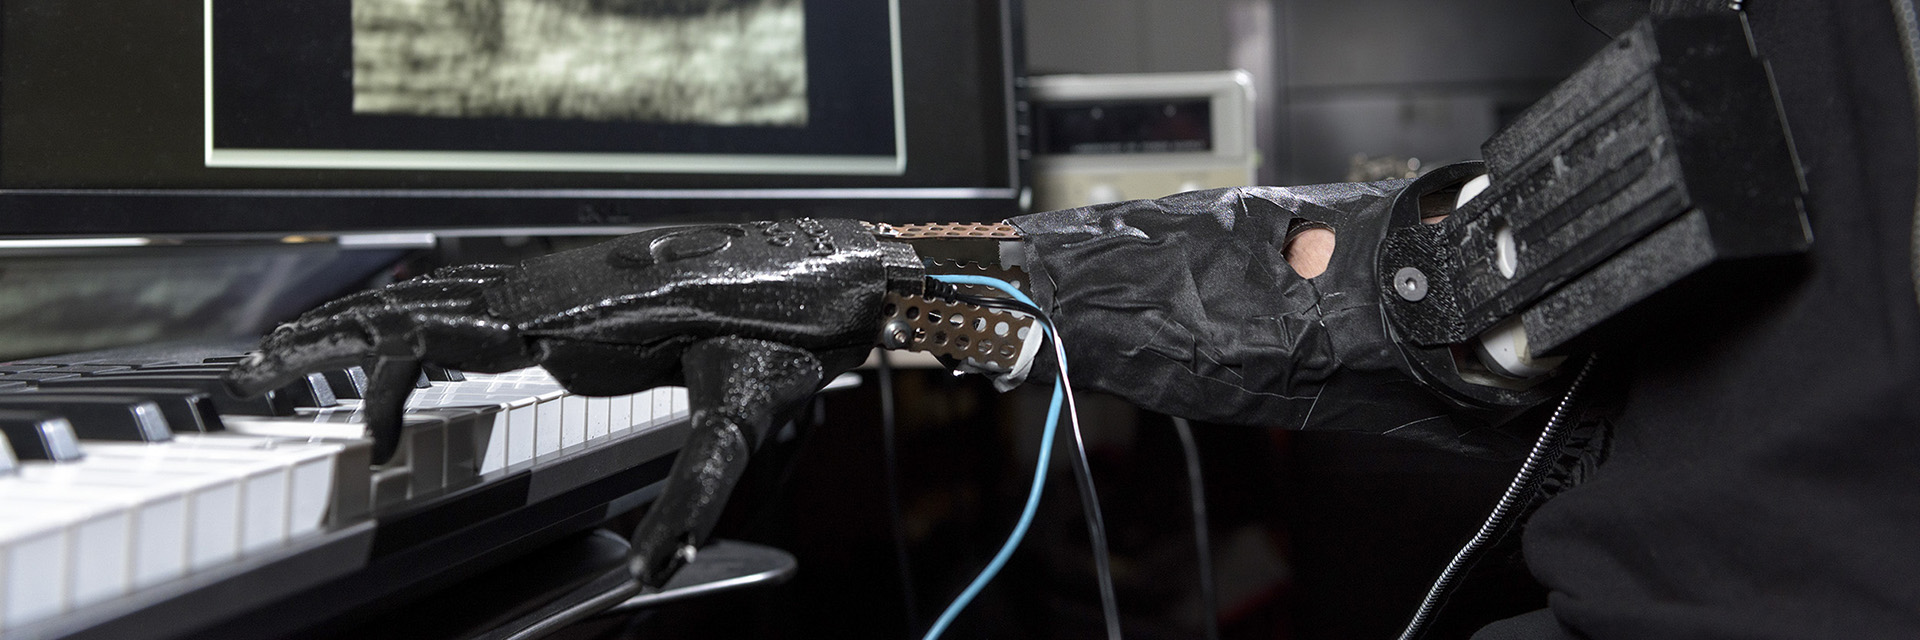 The skywalker hand, a prosthetic hand designed to help amputees play music, plays the piano.